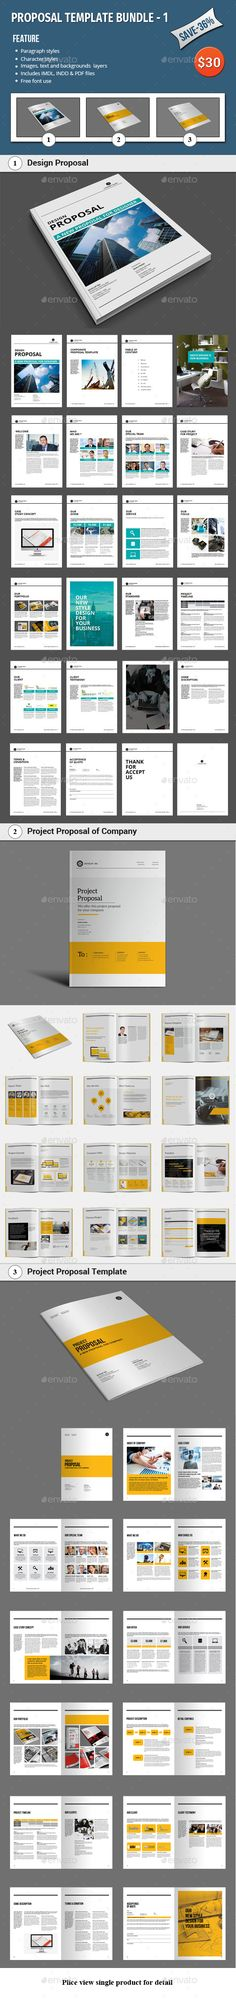 Propsoal Proposals, Proposal templates and Business proposal